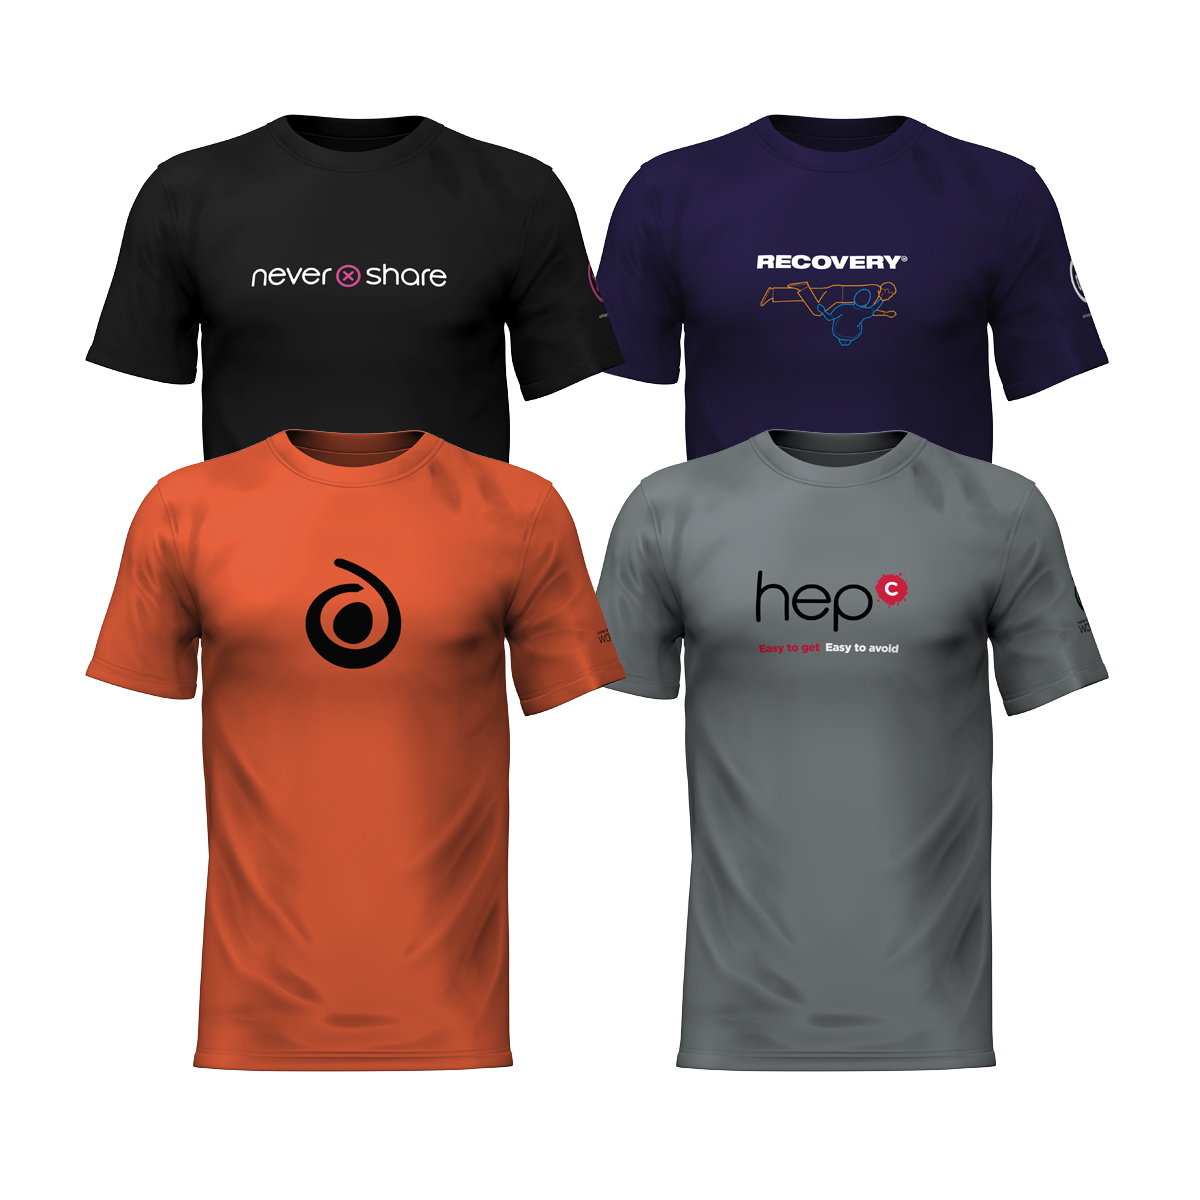 12 T-shirt pack: all 4 designs, mixed sizes